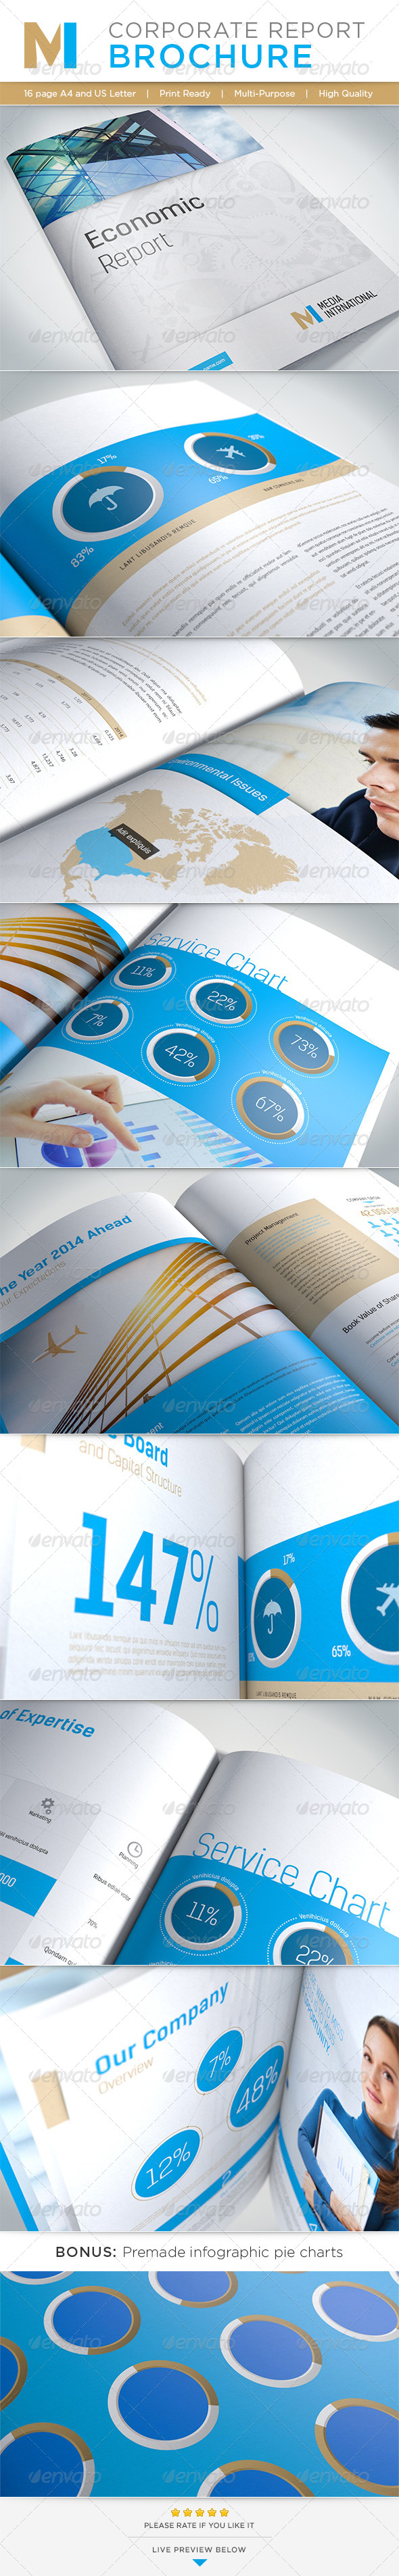 GraphicRiver Corporate Report Brochure 4796409